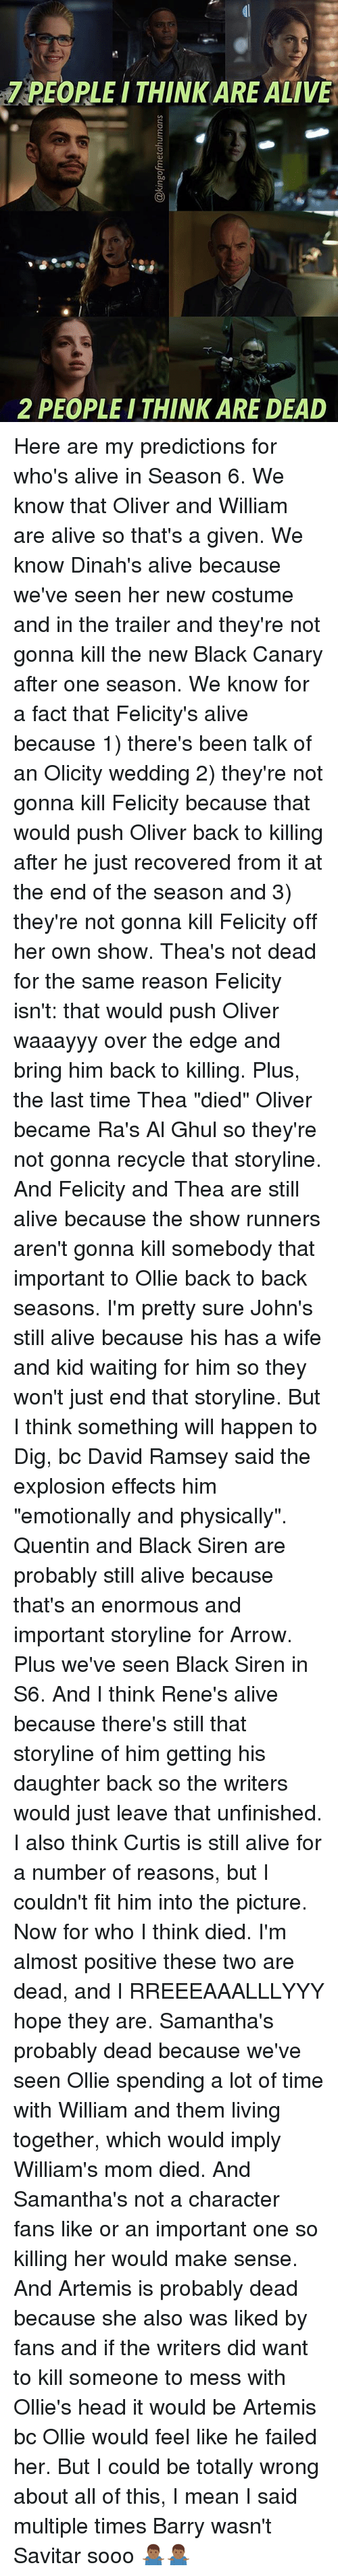 """Alive, Back to Back, and Head: PEOPLE I THINK ARE ALIVE  2 PEOPLEITHINK ARE DEAD Here are my predictions for who's alive in Season 6. We know that Oliver and William are alive so that's a given. We know Dinah's alive because we've seen her new costume and in the trailer and they're not gonna kill the new Black Canary after one season. We know for a fact that Felicity's alive because 1) there's been talk of an Olicity wedding 2) they're not gonna kill Felicity because that would push Oliver back to killing after he just recovered from it at the end of the season and 3) they're not gonna kill Felicity off her own show. Thea's not dead for the same reason Felicity isn't: that would push Oliver waaayyy over the edge and bring him back to killing. Plus, the last time Thea """"died"""" Oliver became Ra's Al Ghul so they're not gonna recycle that storyline. And Felicity and Thea are still alive because the show runners aren't gonna kill somebody that important to Ollie back to back seasons. I'm pretty sure John's still alive because his has a wife and kid waiting for him so they won't just end that storyline. But I think something will happen to Dig, bc David Ramsey said the explosion effects him """"emotionally and physically"""". Quentin and Black Siren are probably still alive because that's an enormous and important storyline for Arrow. Plus we've seen Black Siren in S6. And I think Rene's alive because there's still that storyline of him getting his daughter back so the writers would just leave that unfinished. I also think Curtis is still alive for a number of reasons, but I couldn't fit him into the picture. Now for who I think died. I'm almost positive these two are dead, and I RREEEAAALLLYYY hope they are. Samantha's probably dead because we've seen Ollie spending a lot of time with William and them living together, which would imply William's mom died. And Samantha's not a character fans like or an important one so killing her would make sense. And Artemis is probably dead b"""